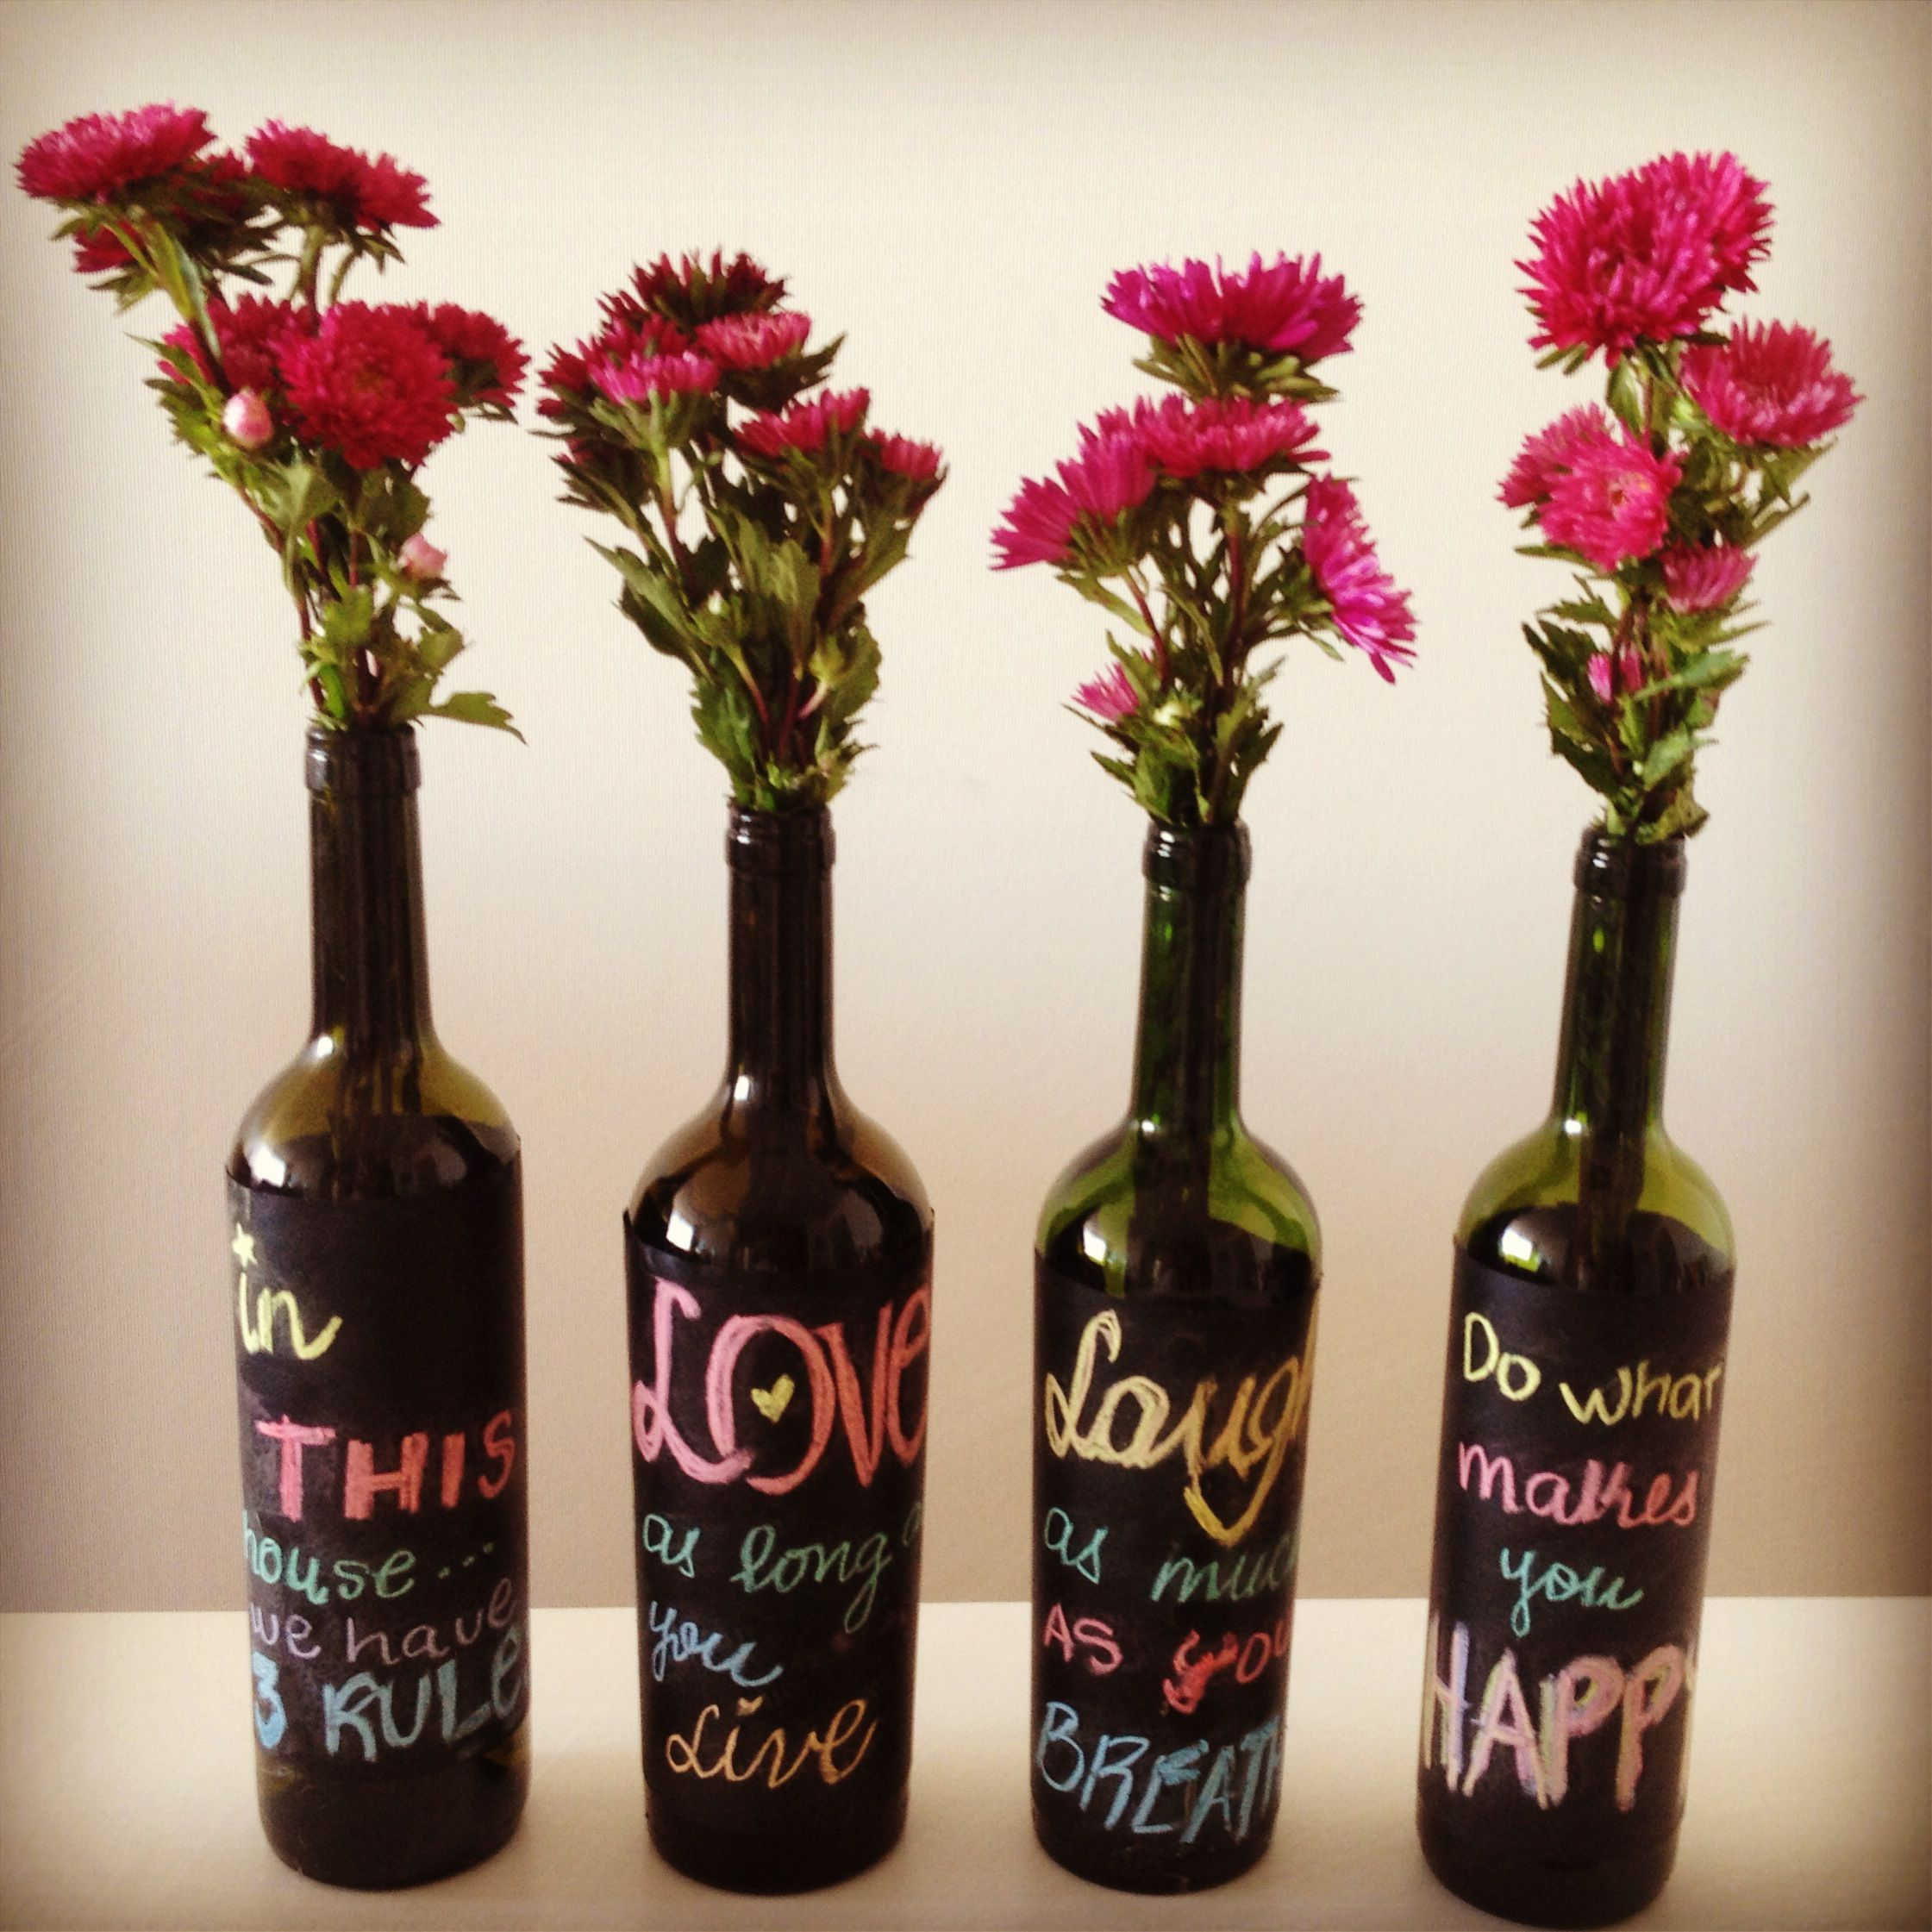 Reduce reuse recycle Wine bottles Live laugh love Homemade at